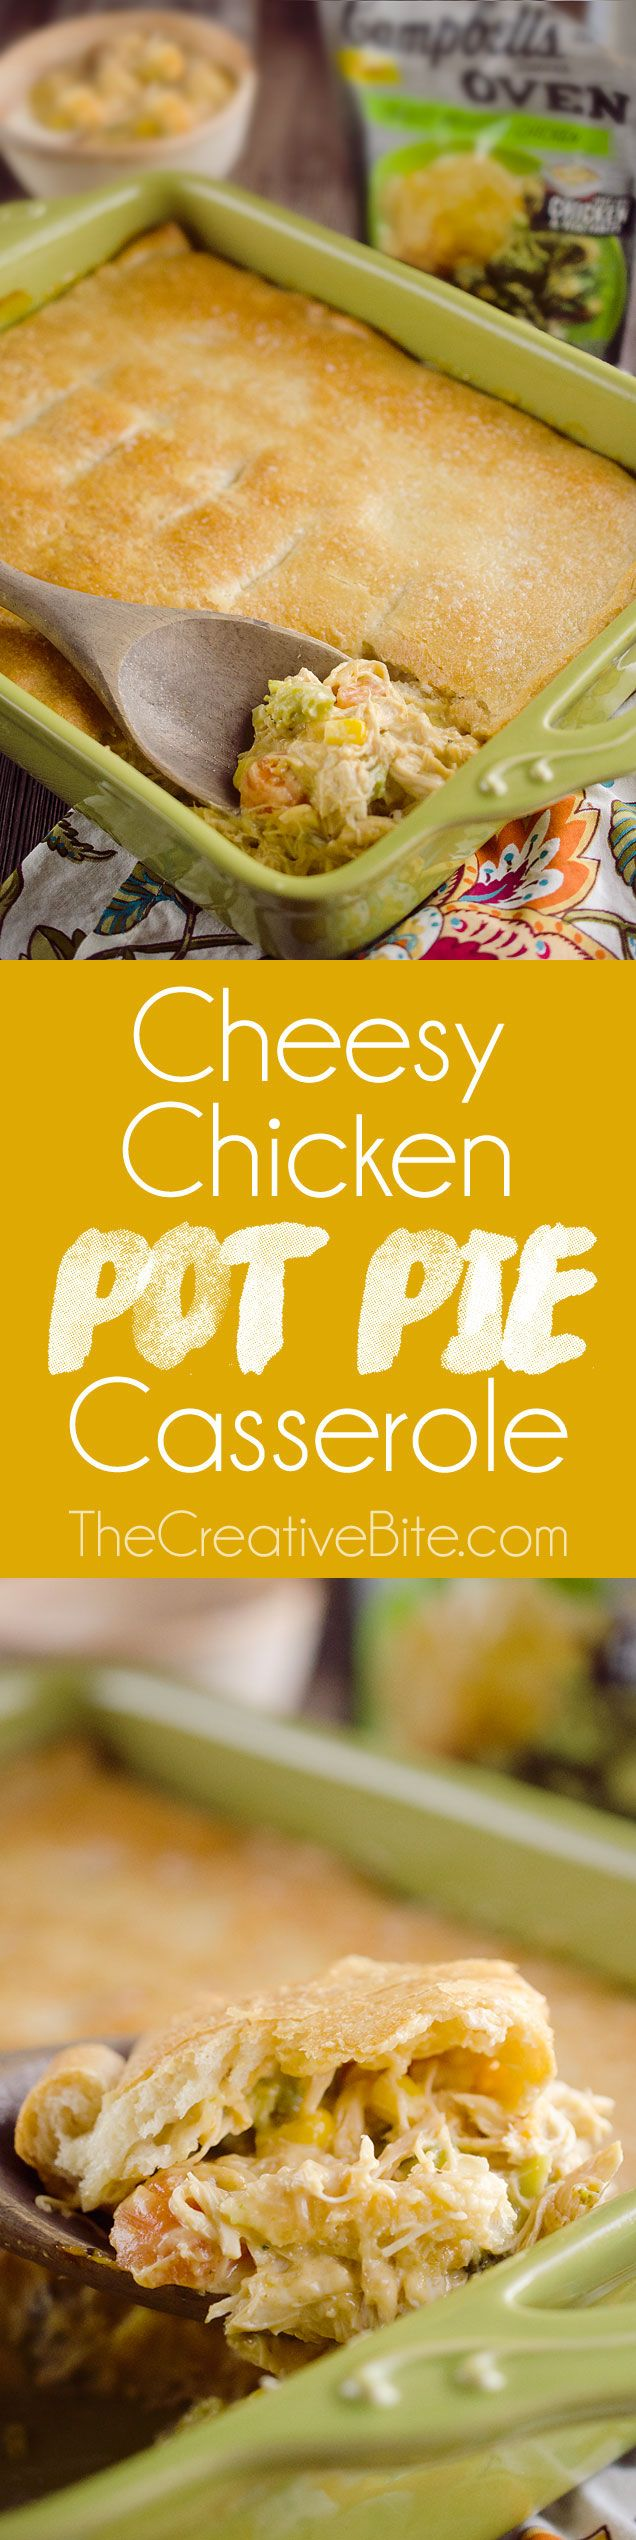 Cheesy Chicken Pot Pie Casserole is a quick and easy 20 minute weeknight dinner idea with only 5 ingredients! Creamy chicken and vegetables with Campbell's Cheesy Broccoli Chicken Oven Sauce are topped with a flaky crescent crust for a delicious recipe the whole family will love! #Chicken #PotPie #Ad #EasyDinner